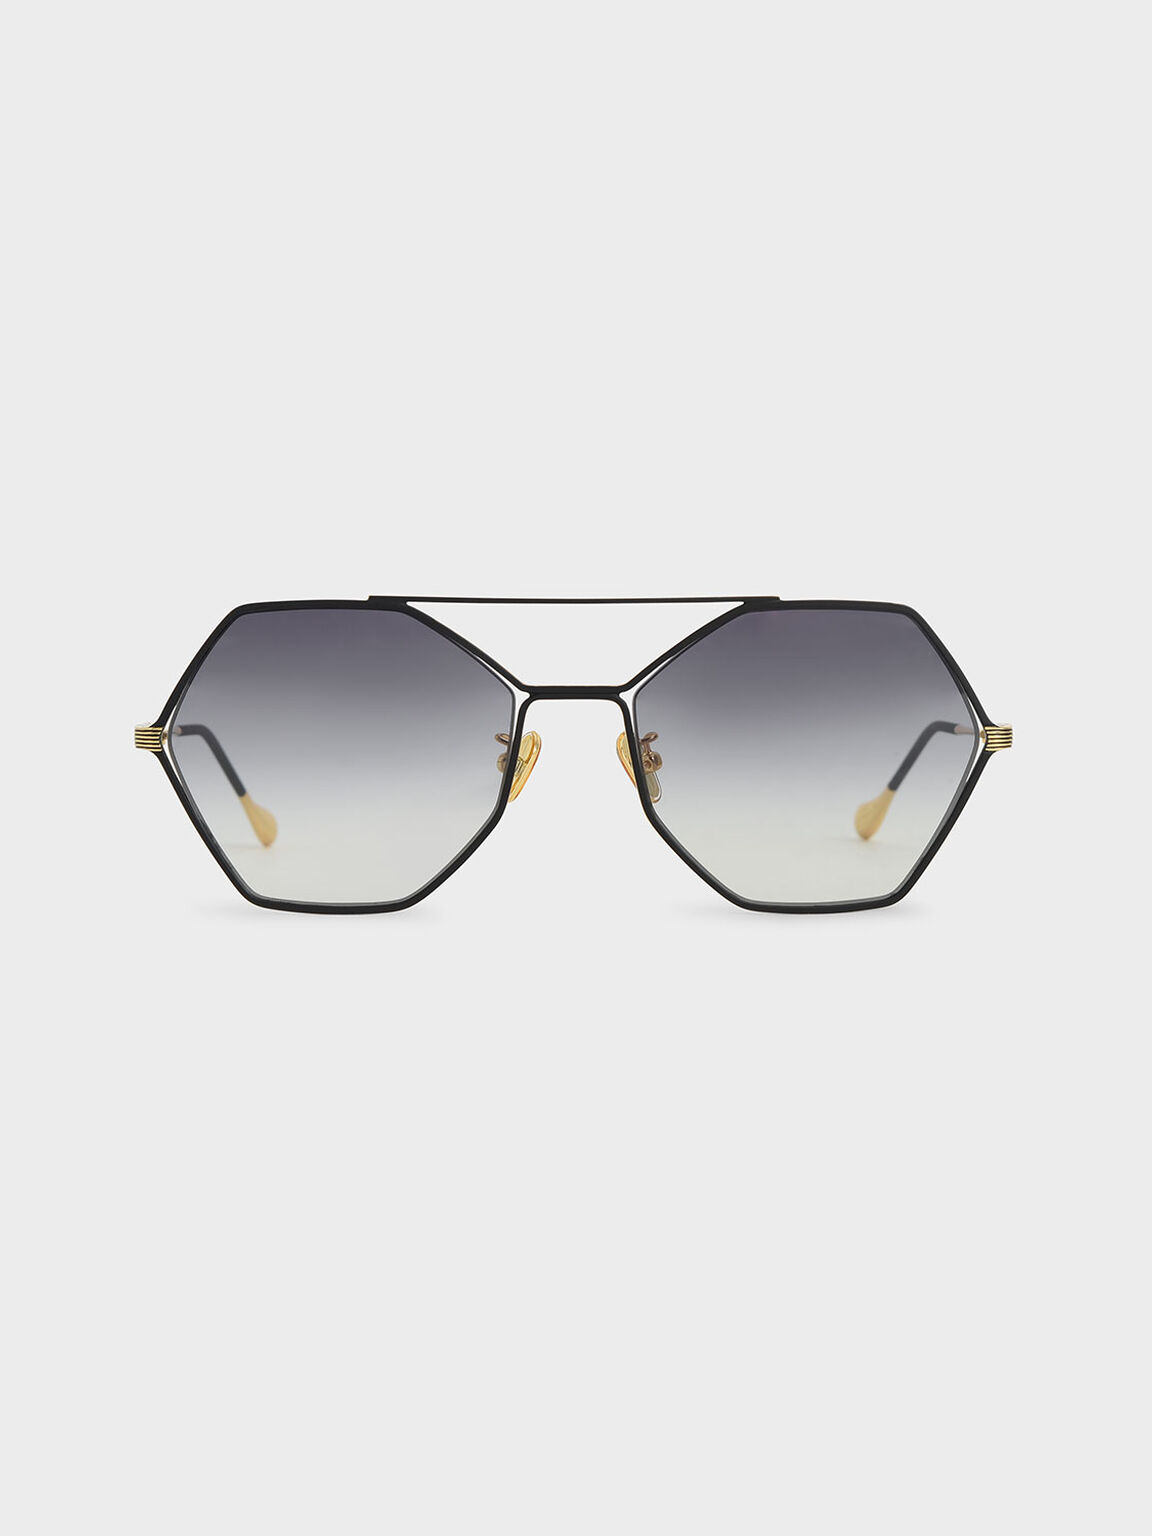 Gradient Tint Geometric Sunglasses, Black, hi-res